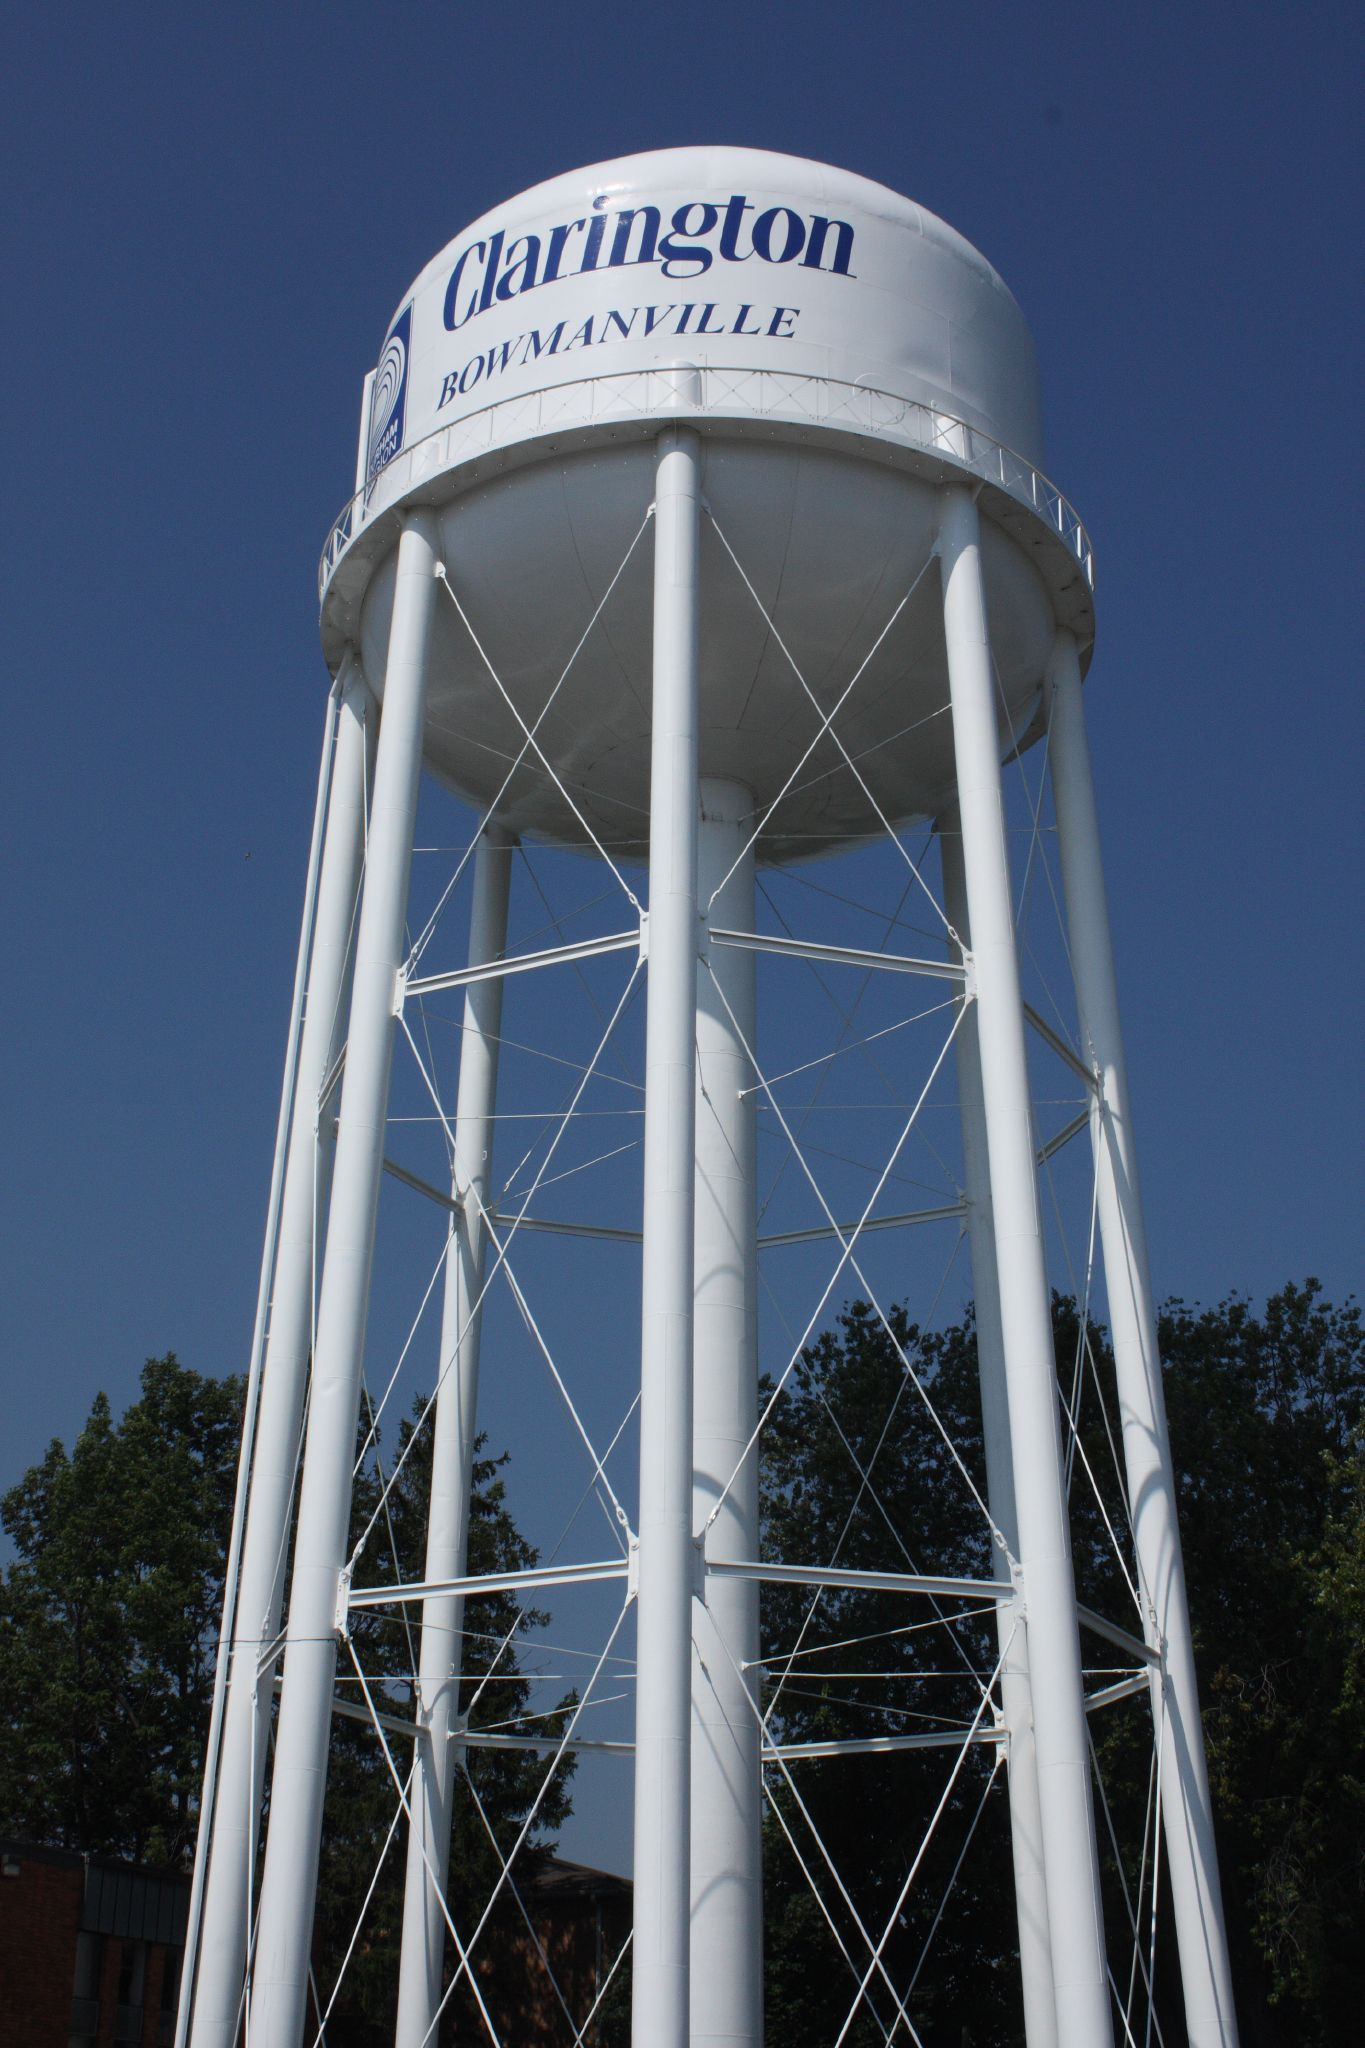 FileBowmanville Ontario water tower.jpg & File:Bowmanville Ontario water tower.jpg - Wikimedia Commons